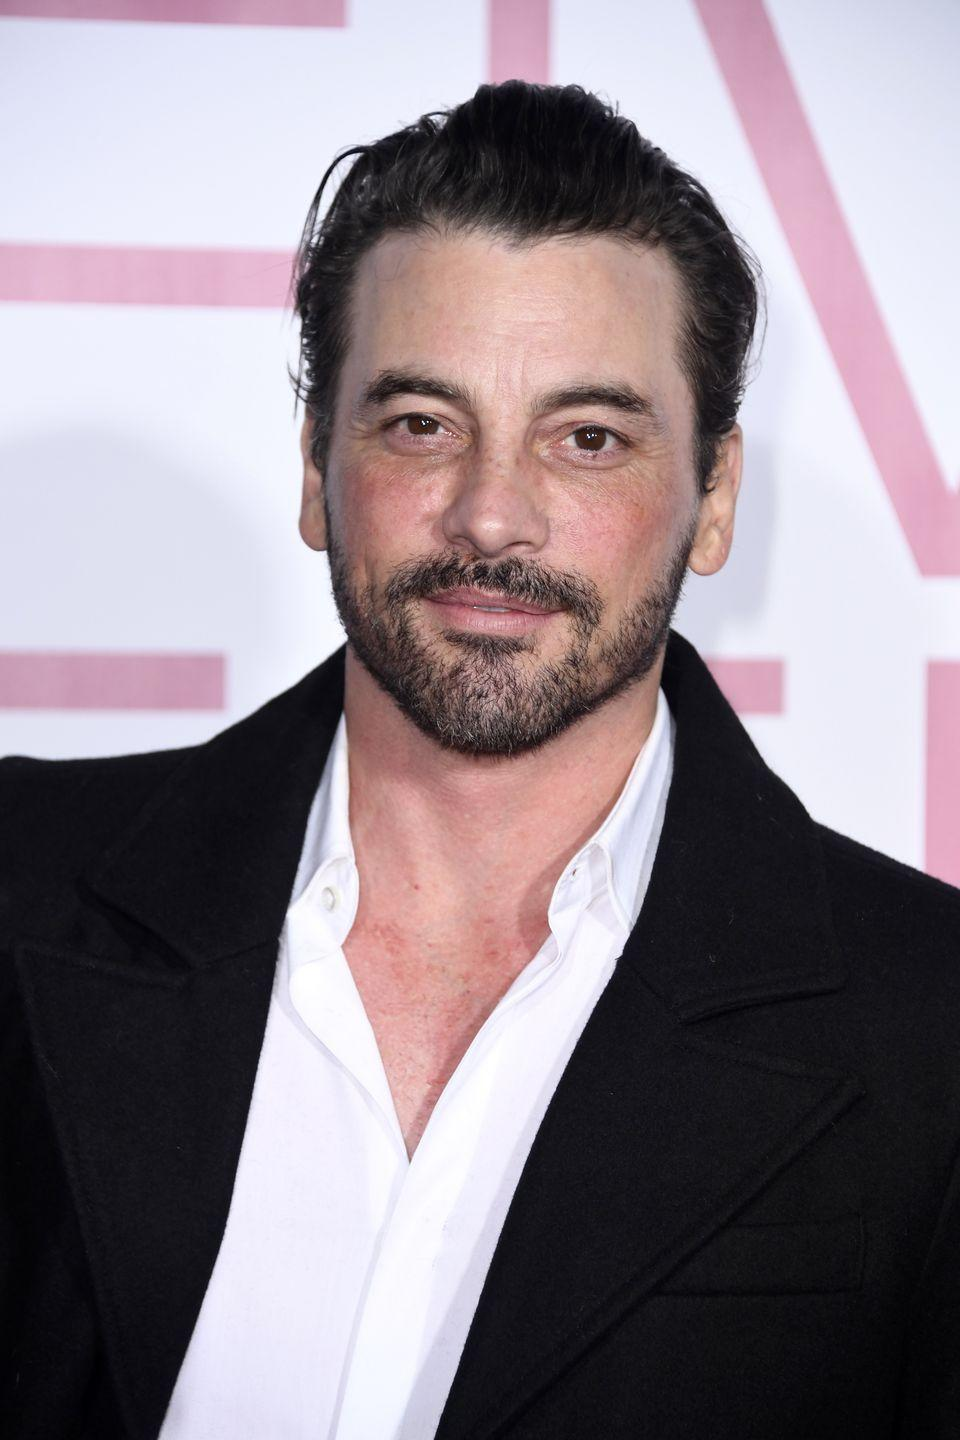 "<p>The news that Skeet Ulrich would not be returning to <em>Riverdale </em>for the show's fifth season has fans wondering what will happen to FP Jones. Ulrich explained on an <a href=""https://comicbook.com/tv-shows/news/riverdale-skeet-ulrich-leaving-series-explained-reaction/"" rel=""nofollow noopener"" target=""_blank"" data-ylk=""slk:Instagram Live (per Comicbook.com)"" class=""link rapid-noclick-resp"">Instagram Live (per Comicbook.com)</a> that he's leaving because he was ""bored creatively."" <a href=""https://tvline.com/2020/02/23/riverdale-skeet-ulrich-leaving-fp-jones/"" rel=""nofollow noopener"" target=""_blank"" data-ylk=""slk:Riverdale's creator, Roberto Aguirre-Sacasa"" class=""link rapid-noclick-resp"">Riverdale's creator, Roberto Aguirre-Sacasa</a>, said that the actor is ""always welcome back in Riverdale.""</p>"